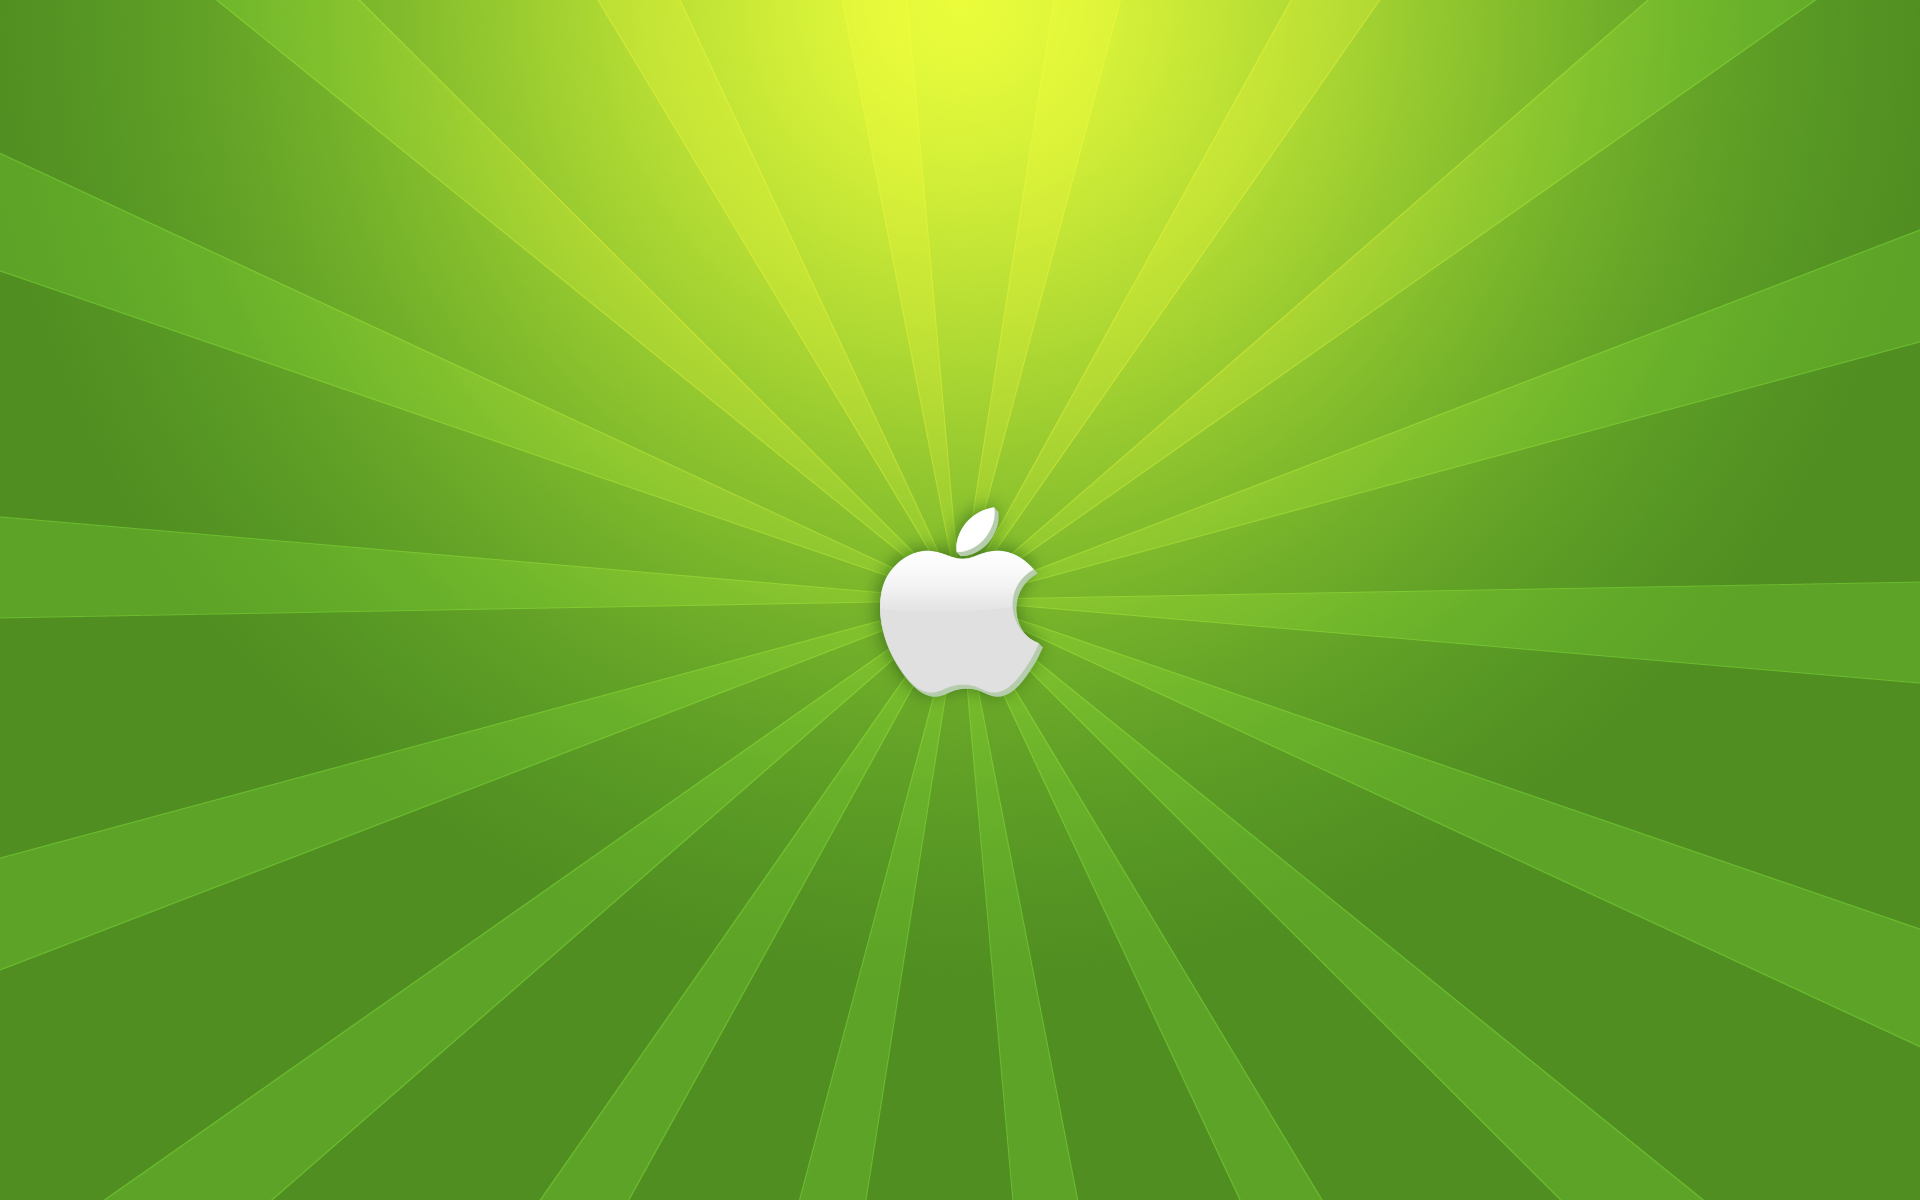 wallpapers manzana verde mac - photo #14